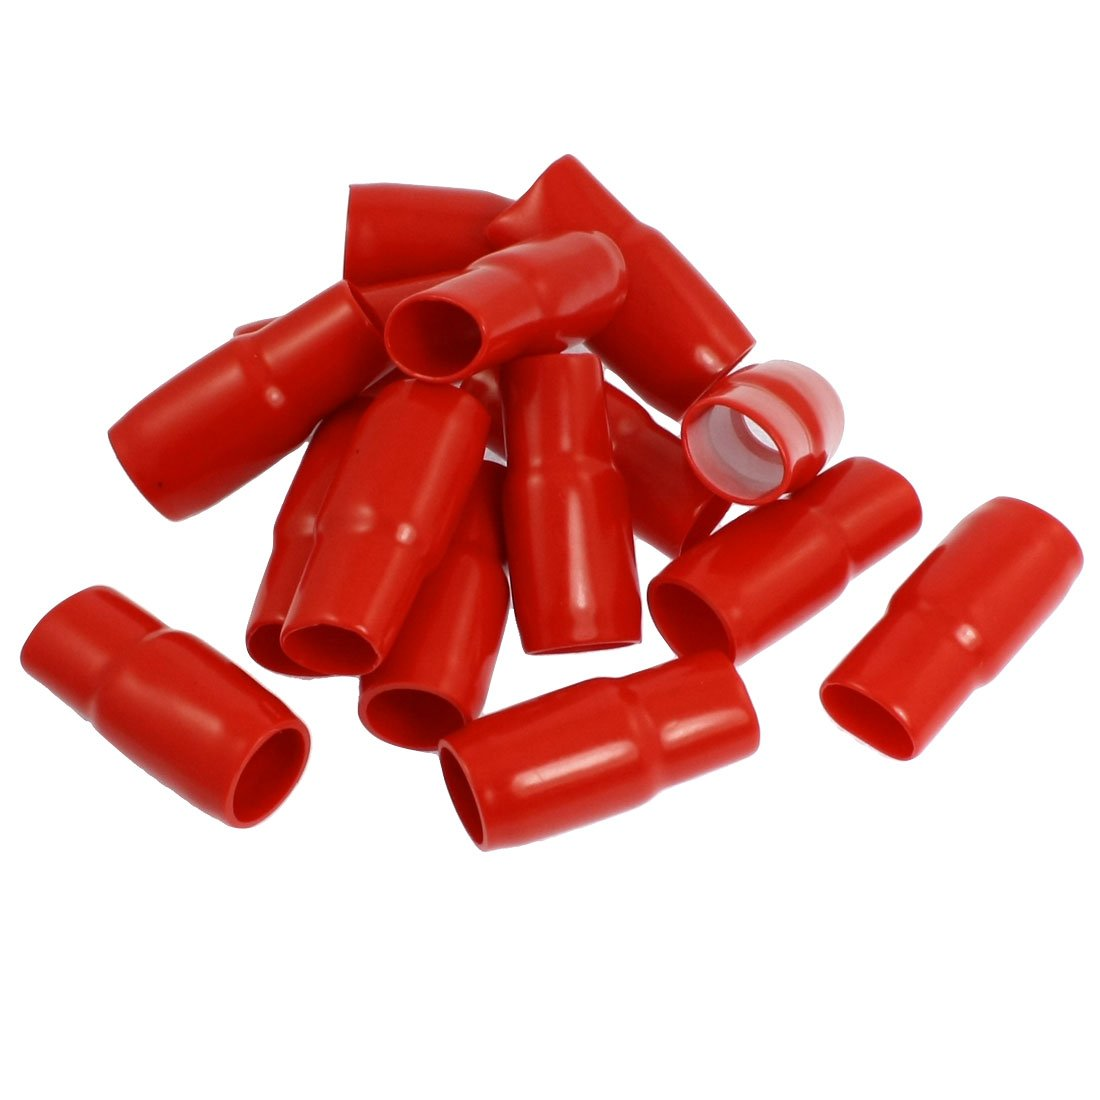 17mm Battery Clips Terminals Boots PVC Insulated Covers Red 15 Pcs